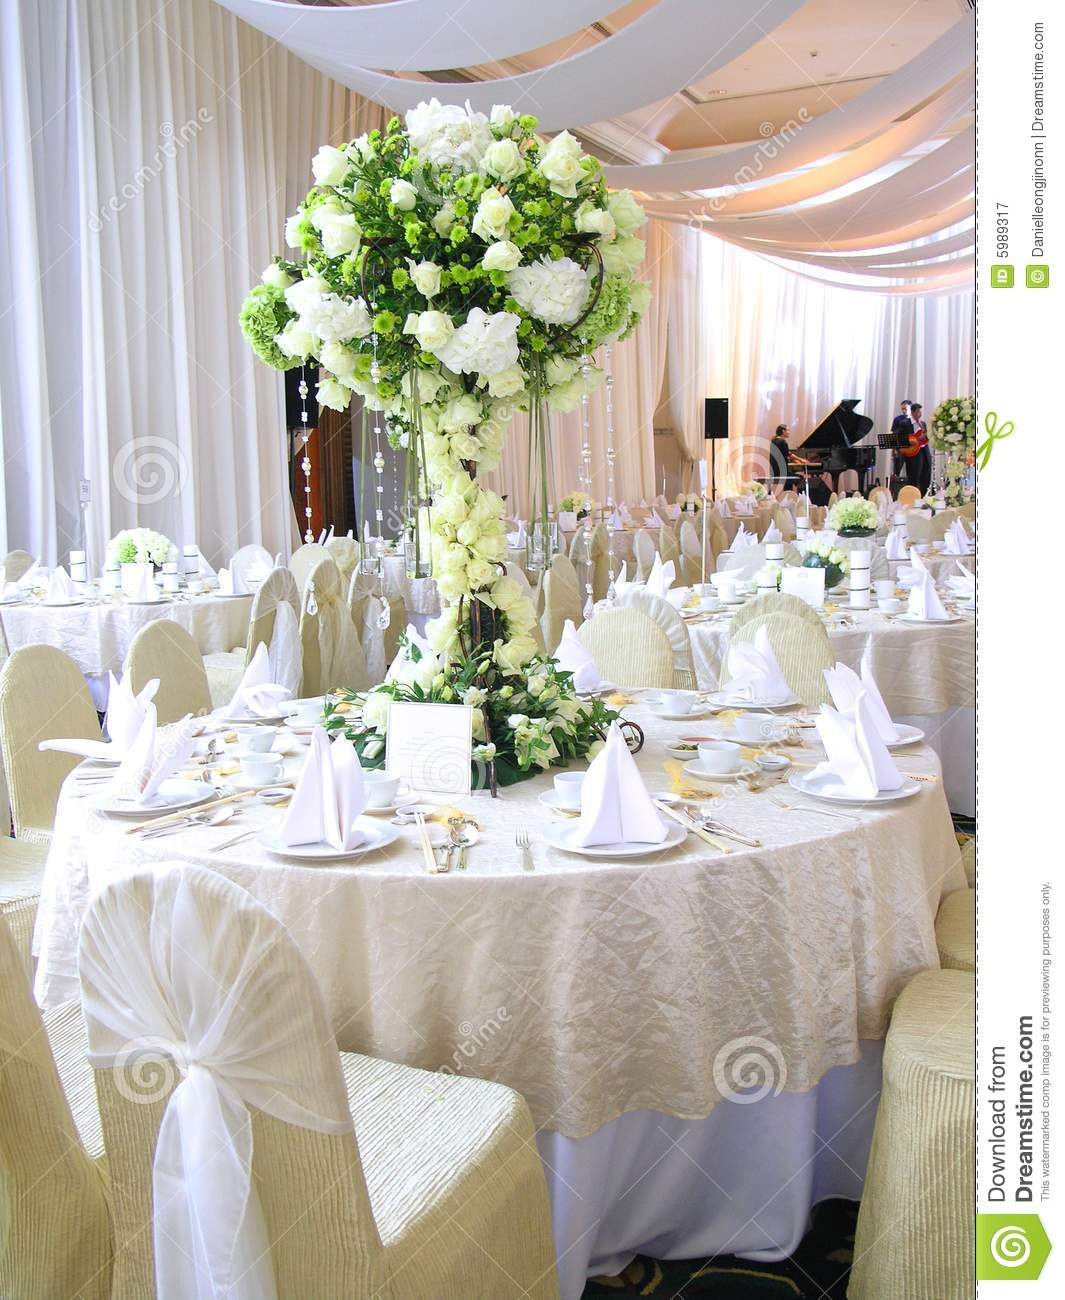 Wedding Table Setting Stock Image Image Of Cloth Cater